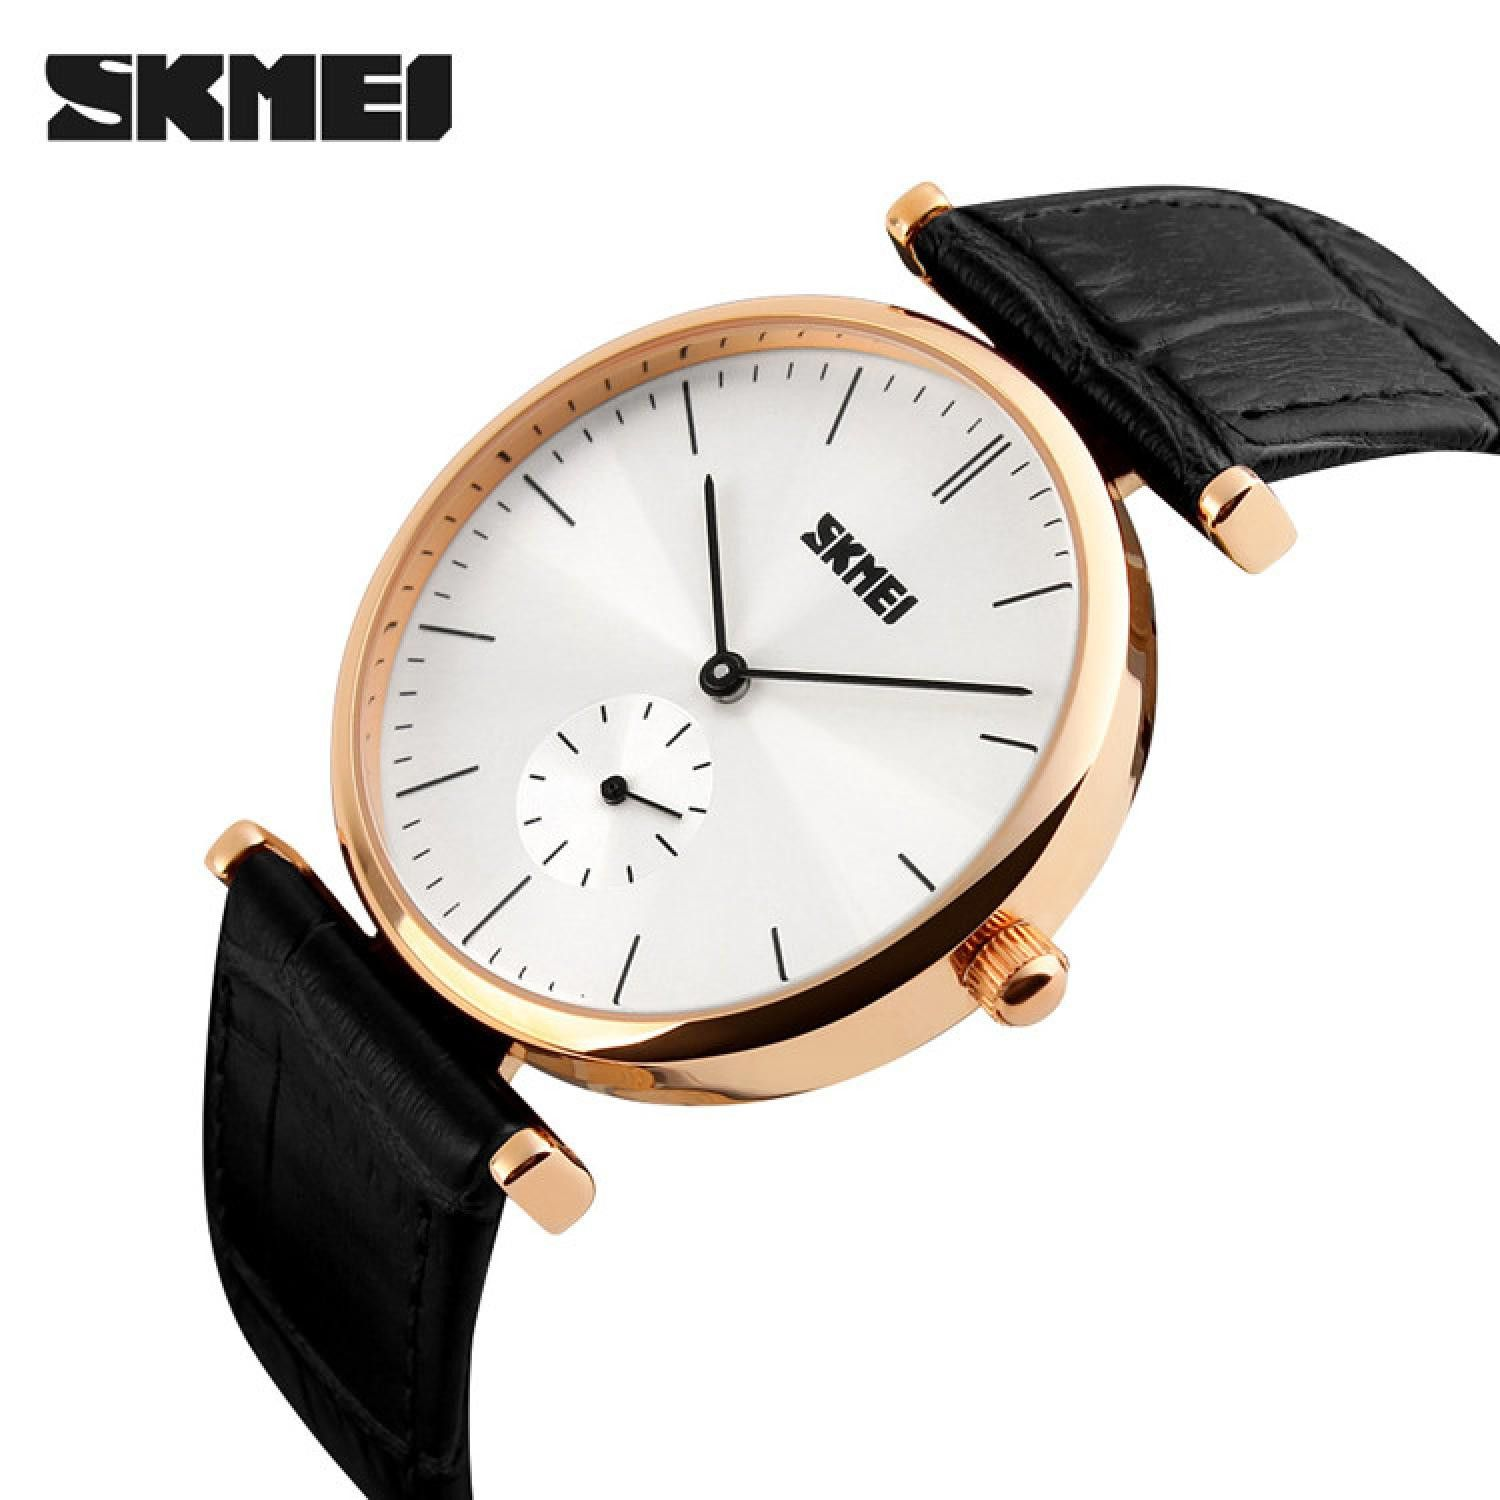 Jam Tangan Pria Skmei Analog Casual Men Leather Watch Original 1175cl